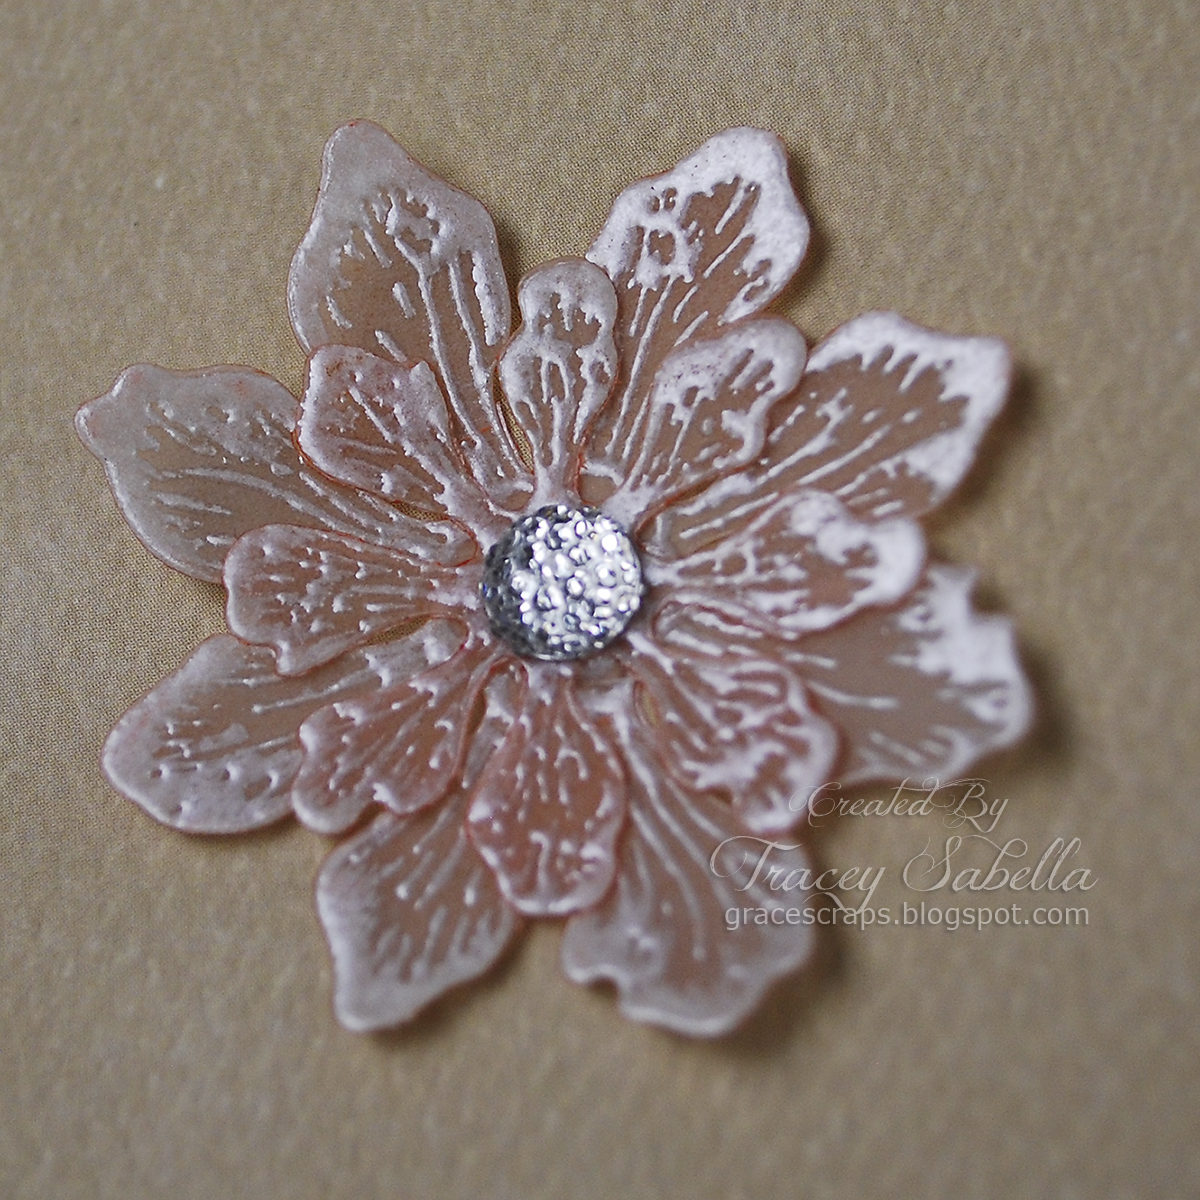 Garden of grace embossed vellum flower tutorial and first dance garden of grace embossed vellum flower tutorial and first dance details for scrapthat mightylinksfo